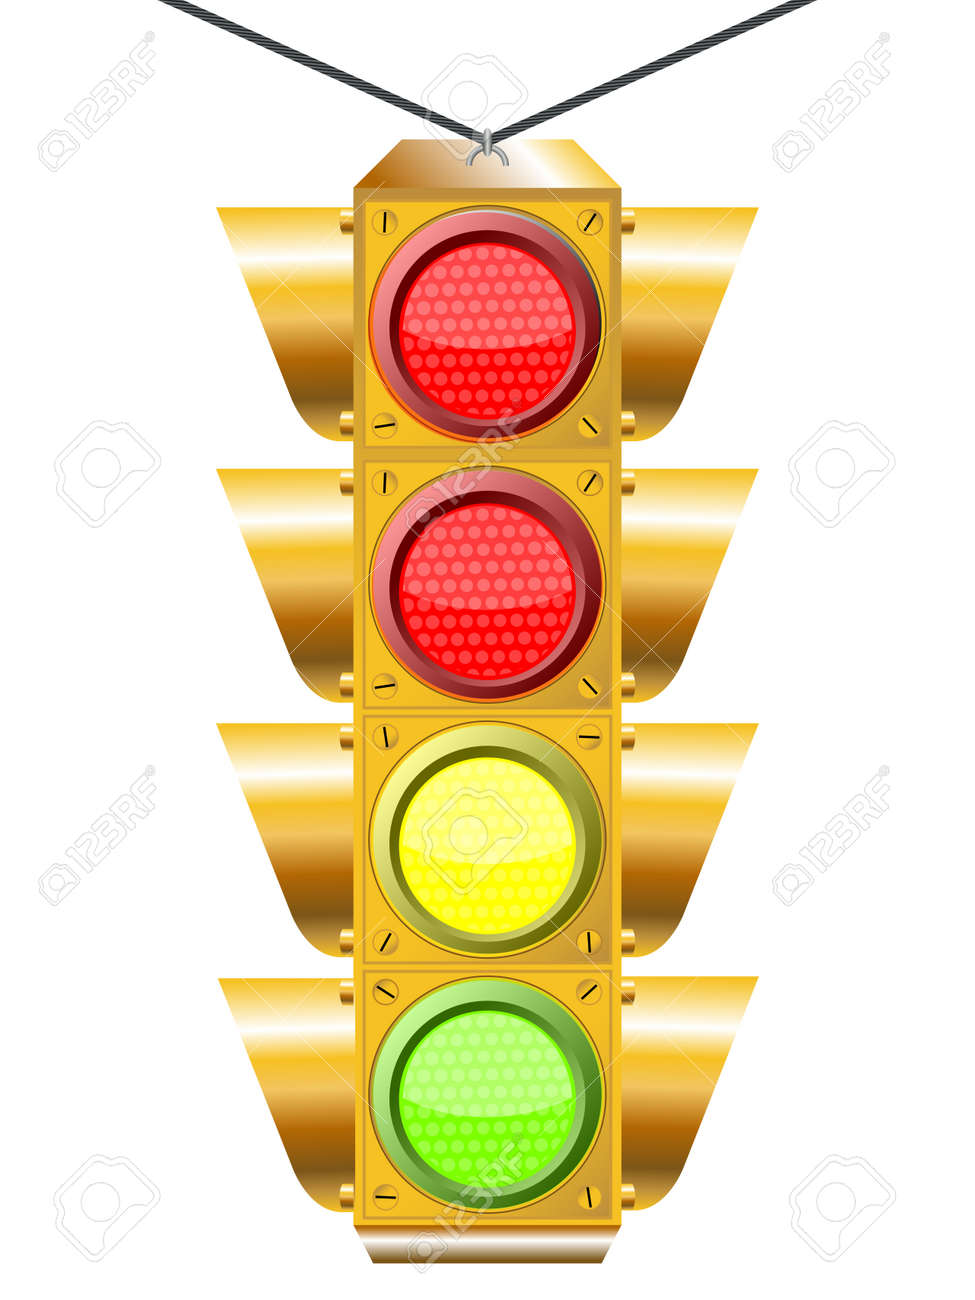 traffic light with four lights Stock Vector - 7304178